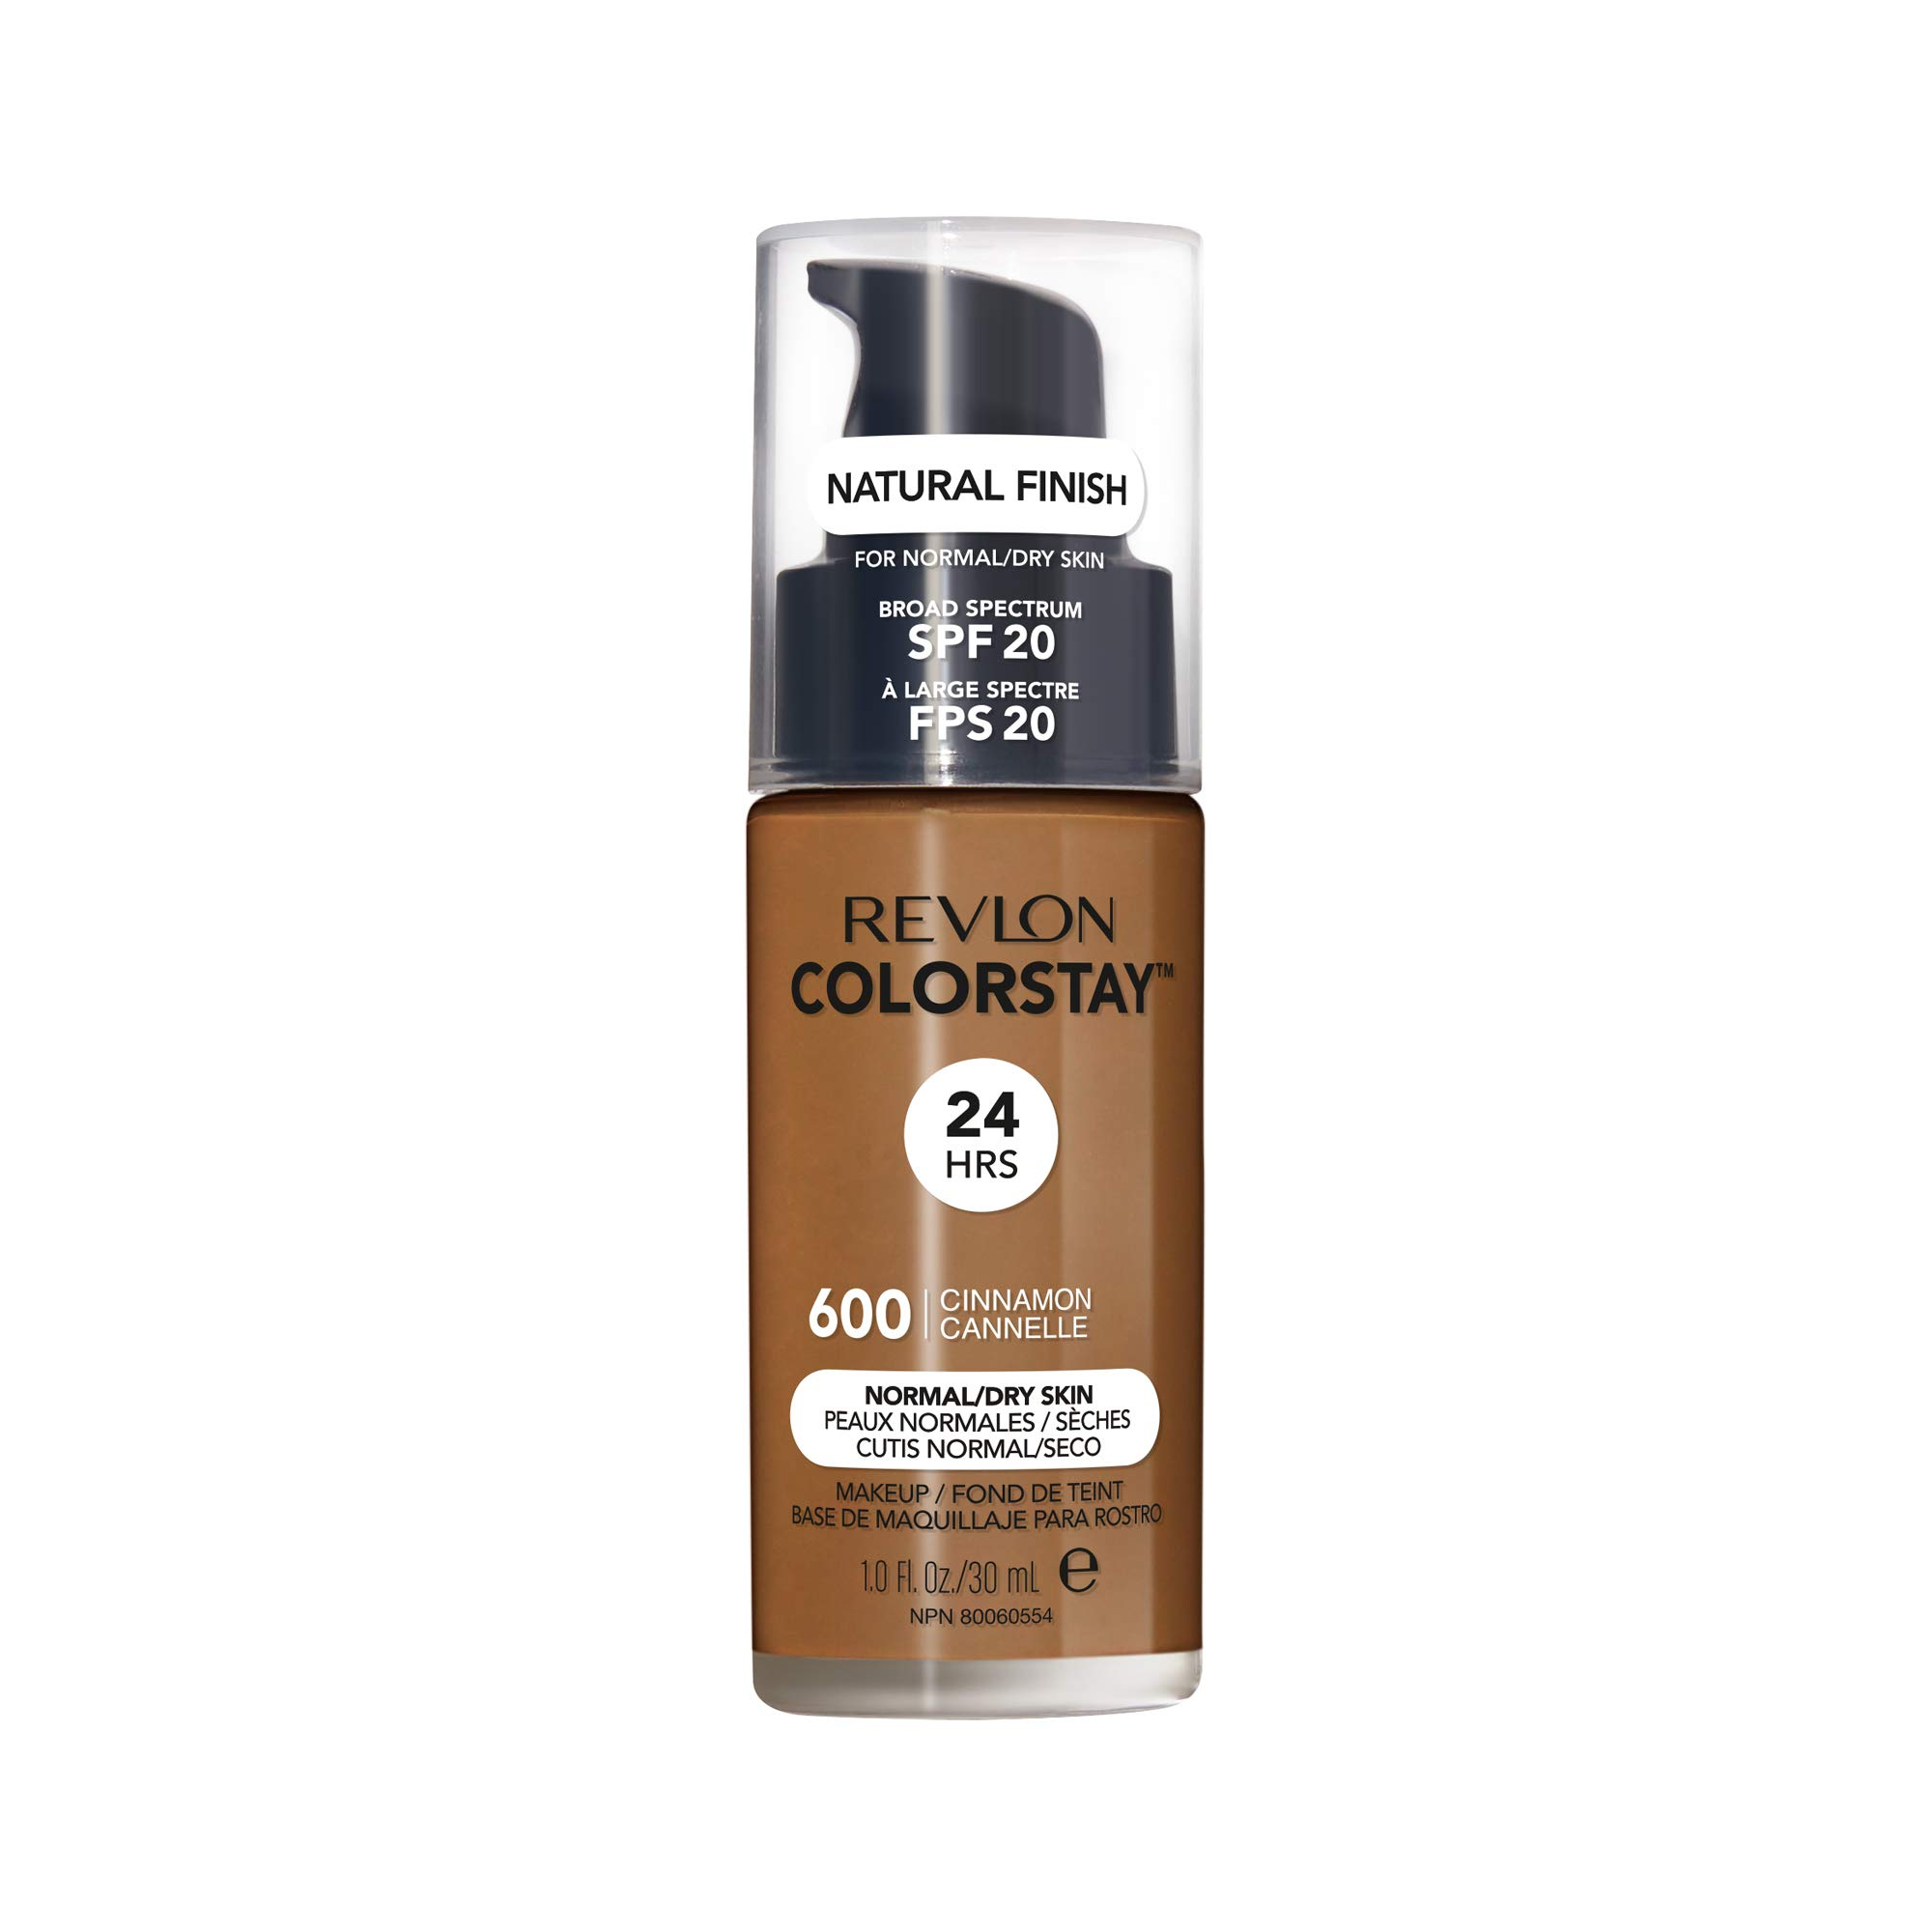 Revlon ColorStay Makeup for Normal/Dry Skin SPF 20, Longwear Liquid Foundation, with Medium-Full Coverage, Natural Finish, Oil Free, 600 Cinnamon, 1.0 oz, 1.0 Fluid Ounce